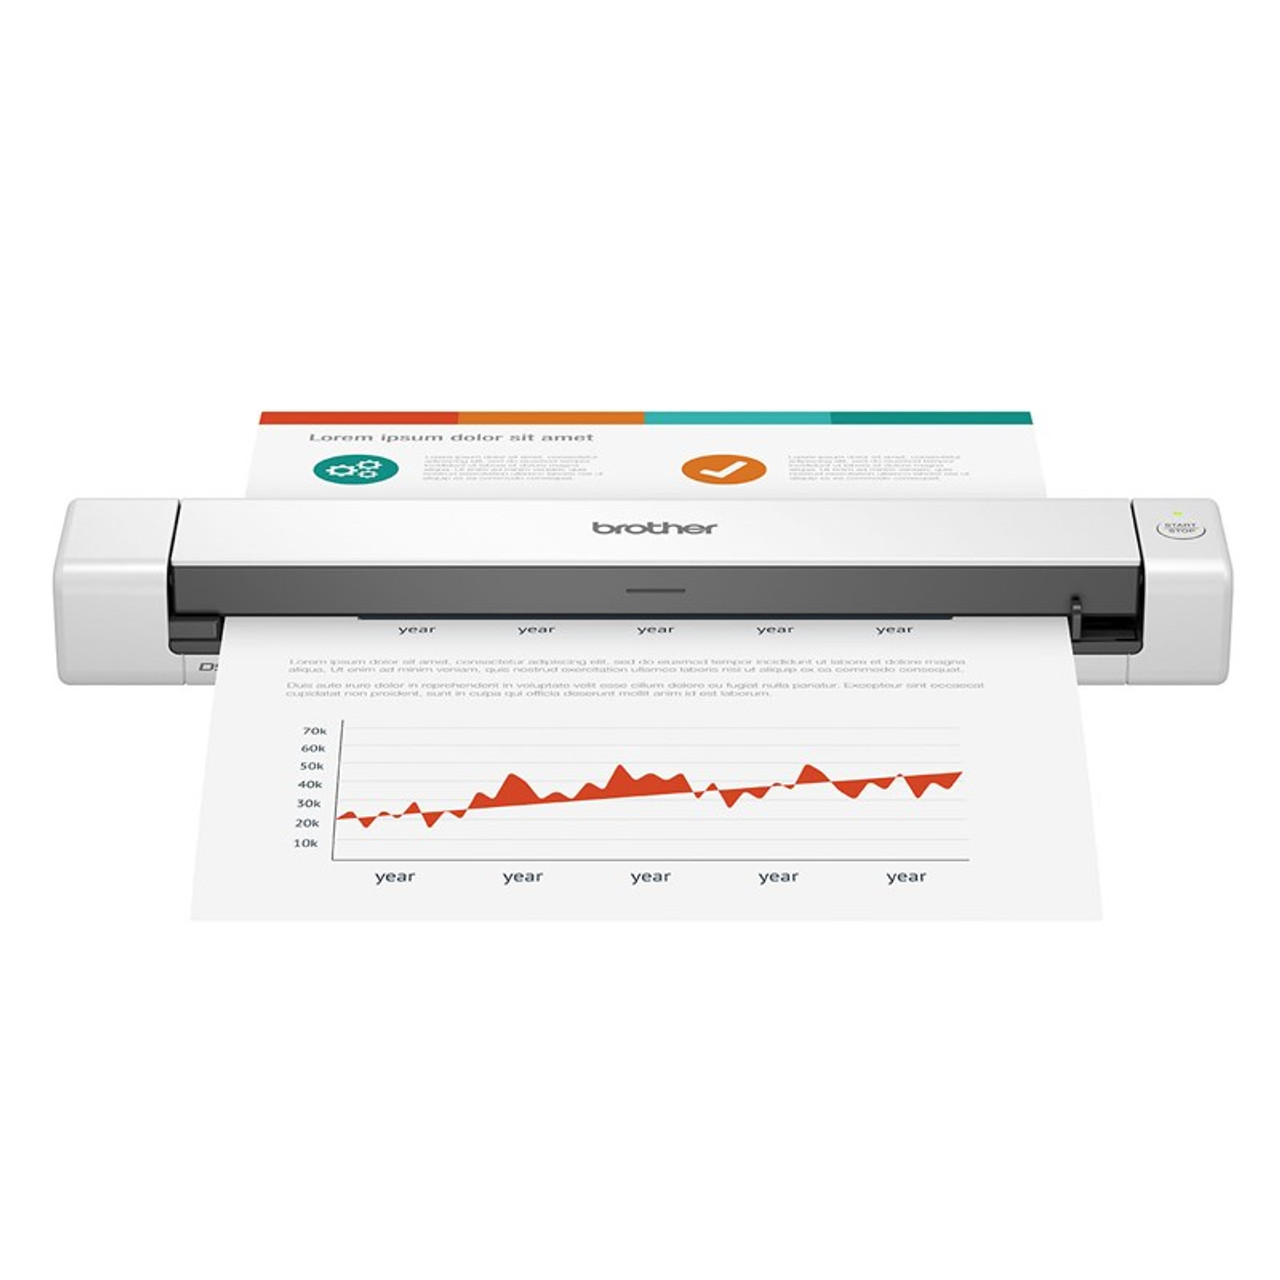 Image for Brother DS-640 Portable Document Scanner CX Computer Superstore